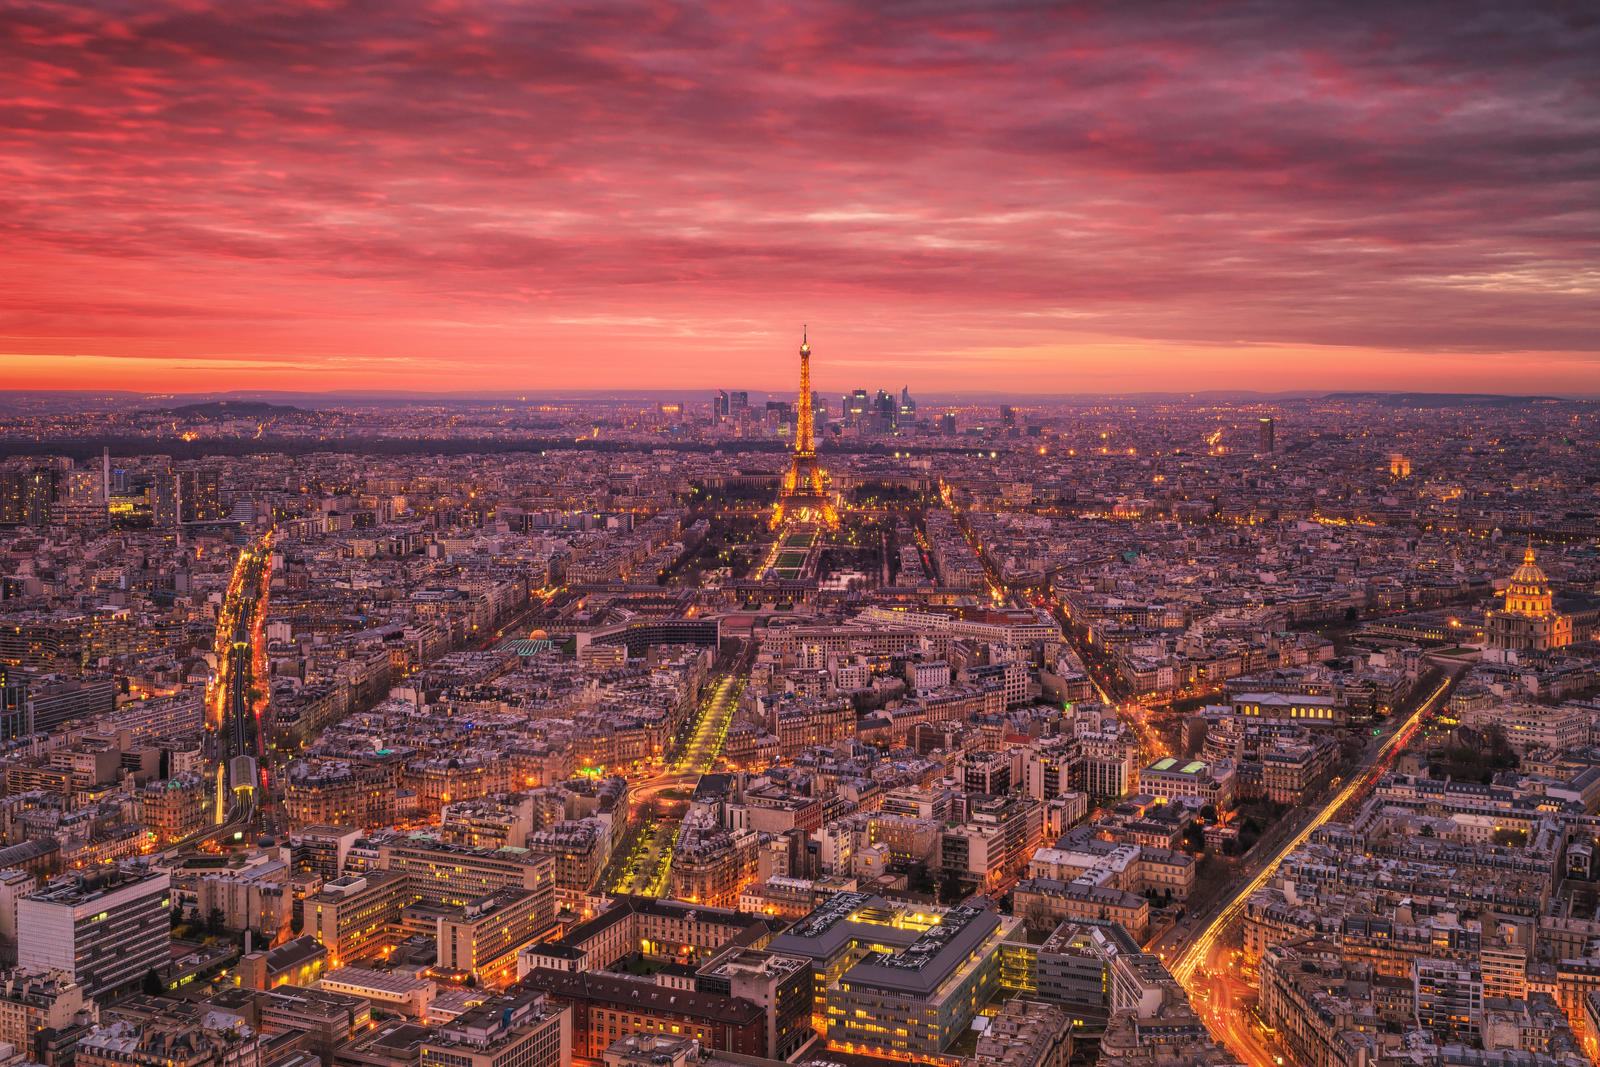 Burning Sky over Paris by Matthias-Haker